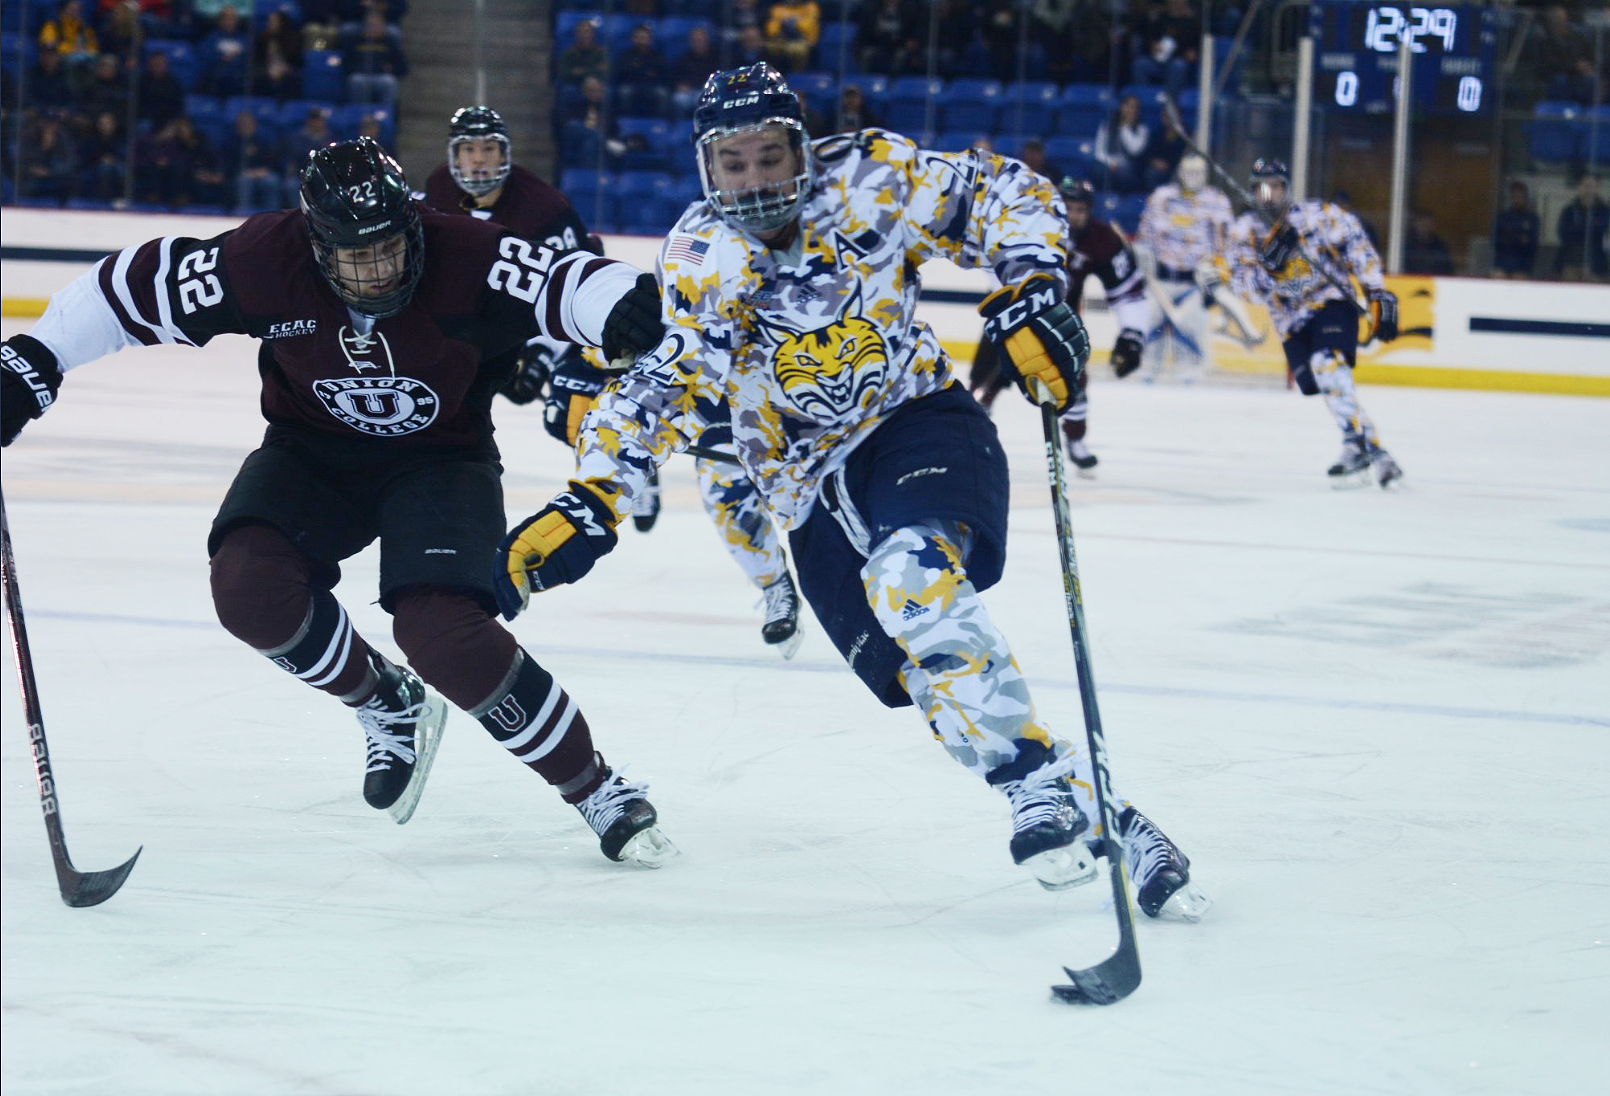 Quinnipiac men's ice hockey loses 5-1 to Union